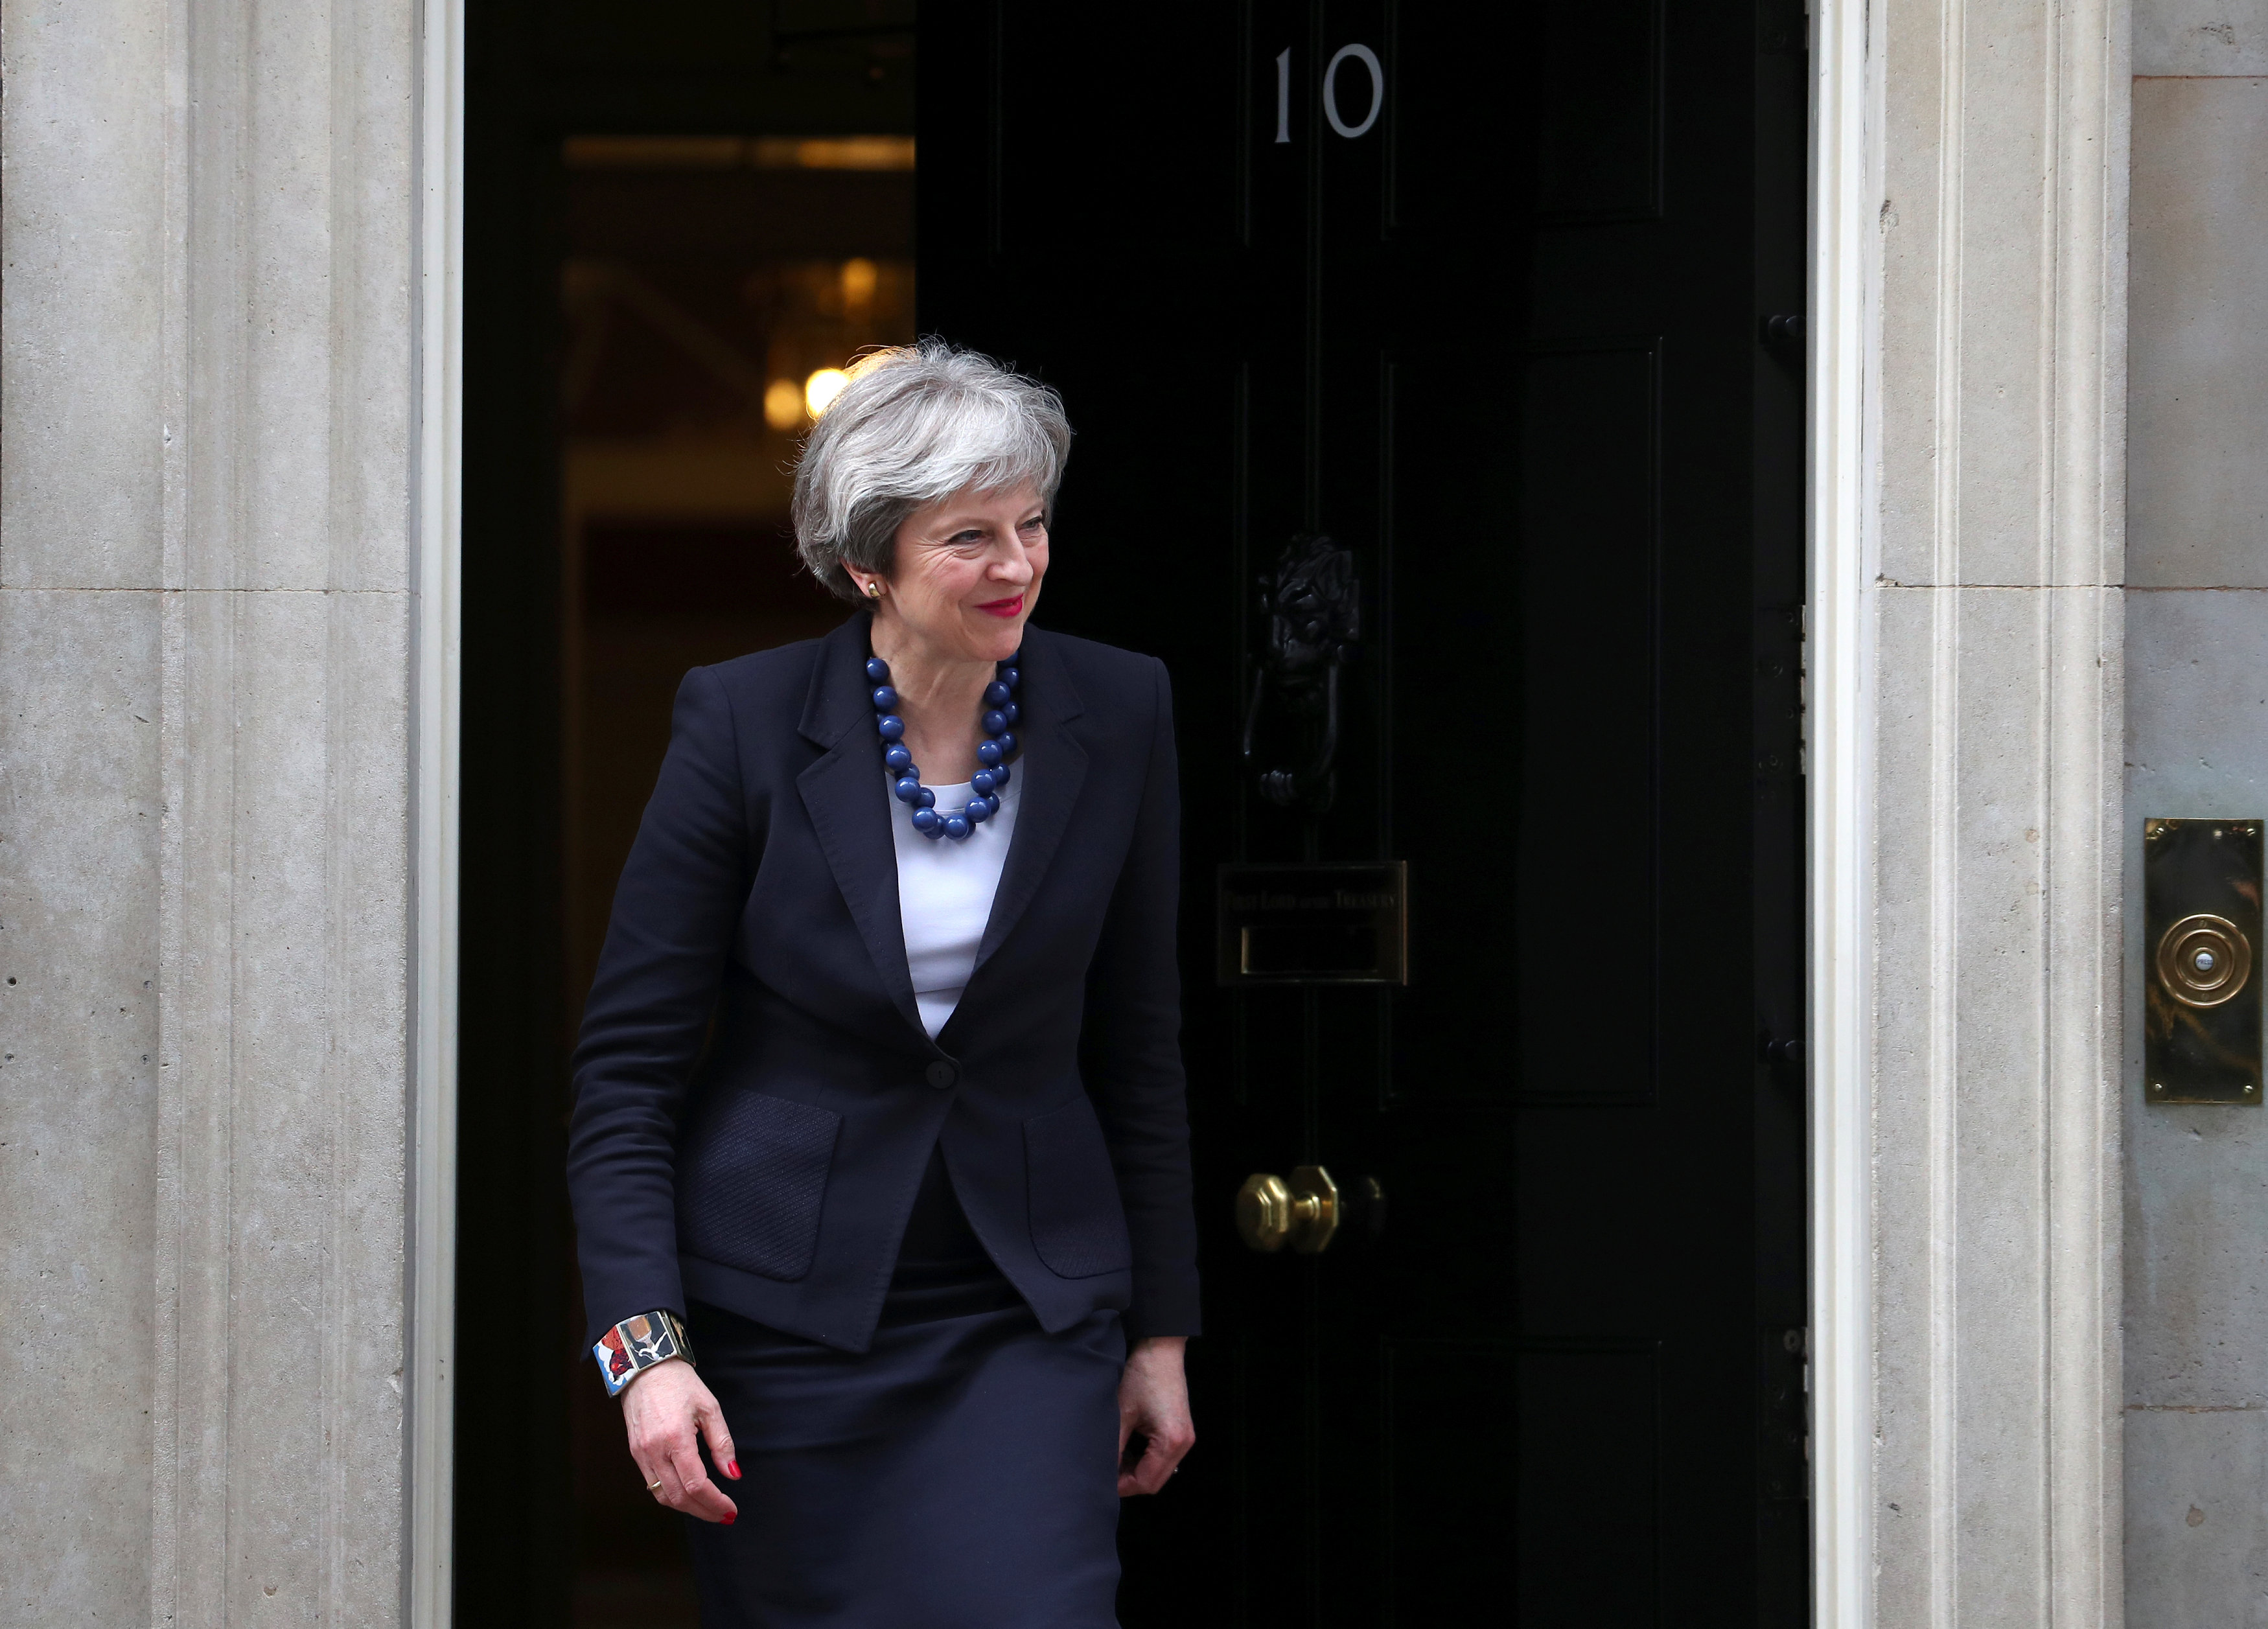 Britain's Prime Minister Theresa May walks out of 10 Downing Street to greet Portugal's Prime Minister Antonio Costa in London, April 10, 2018. REUTERS/Hannah Mckay